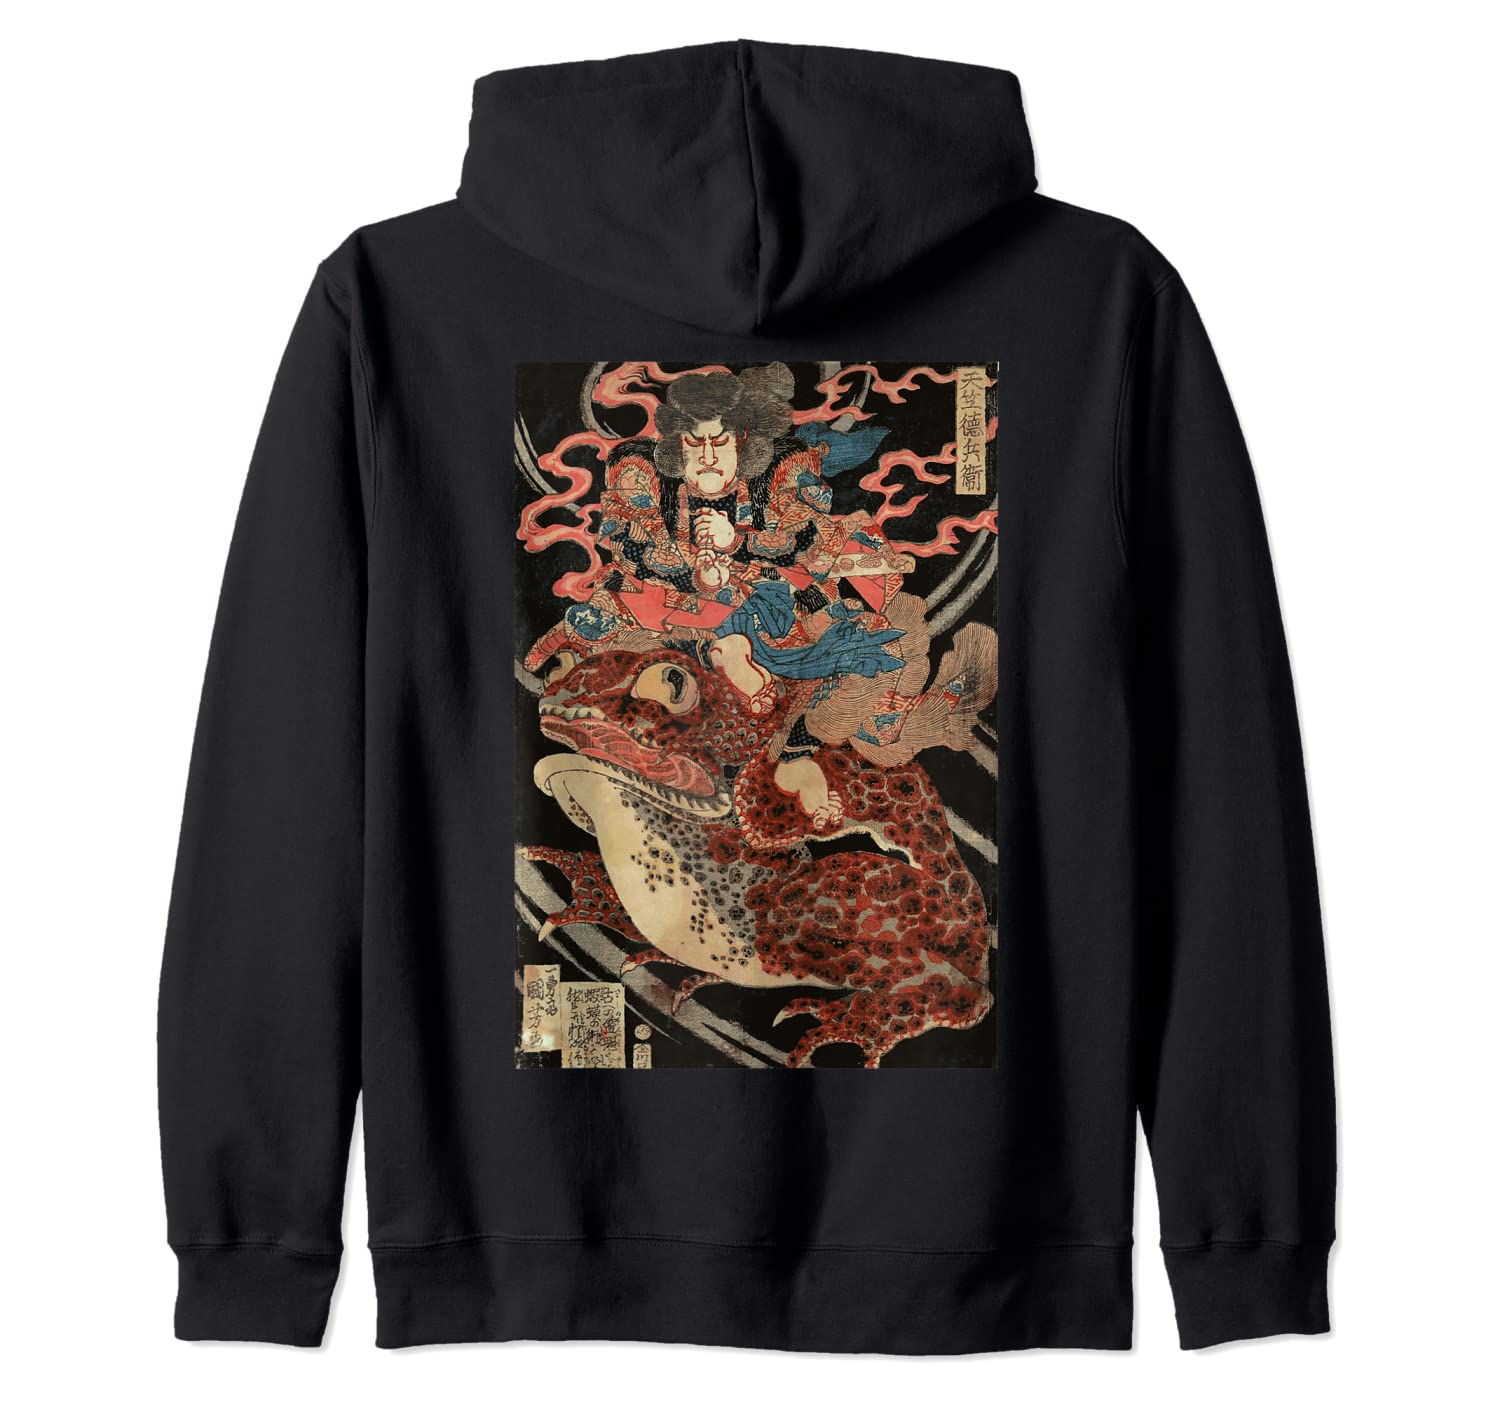 Japanese Retro Artwork Samurai Riding Giant Toad Vintage Art Zip Hoodie